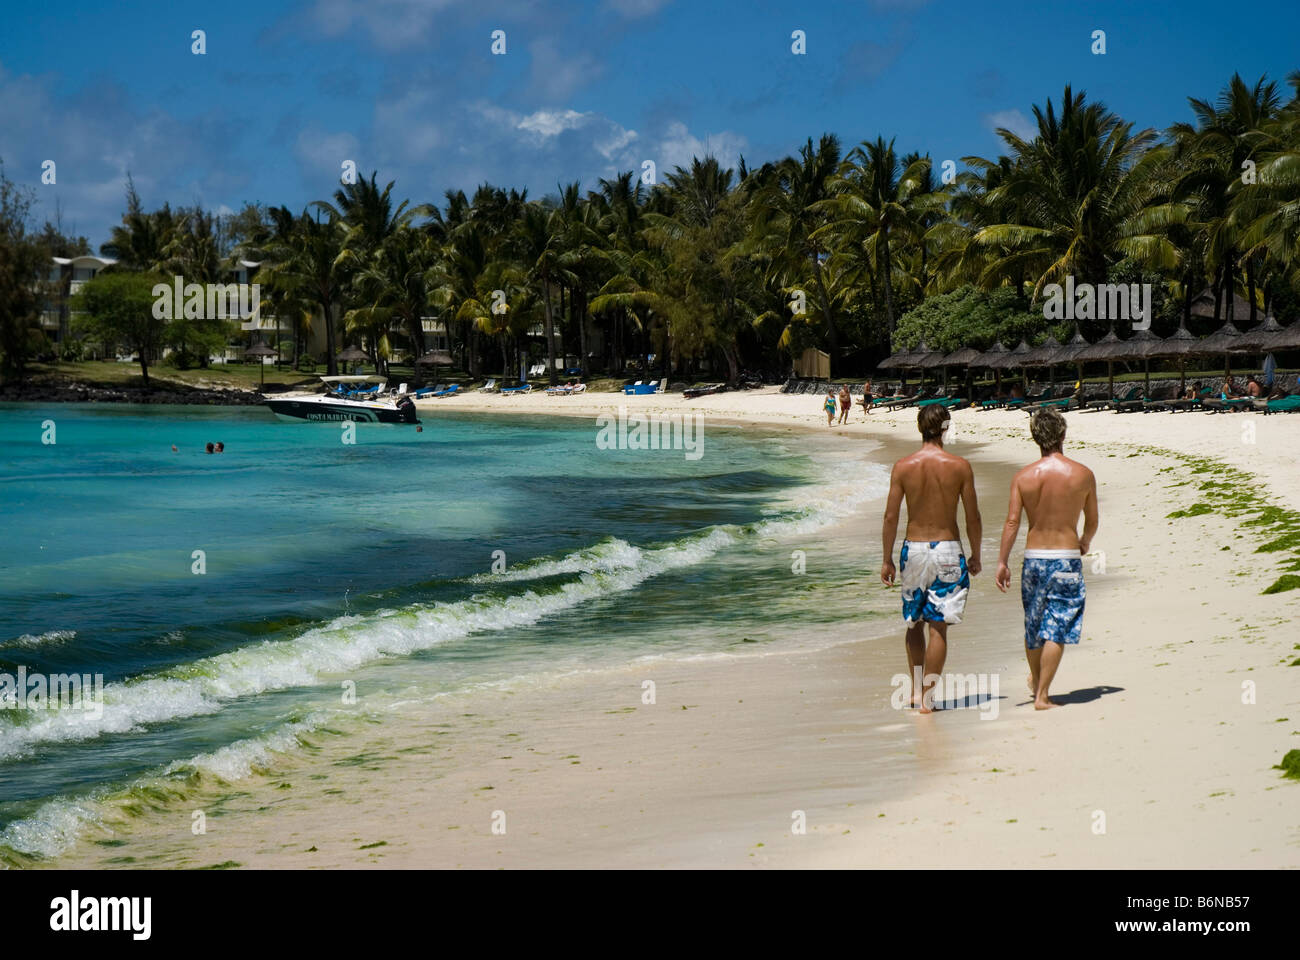 Hotel Constance Belle Mare Plage MAURITIUS ISLAND - Stock Image